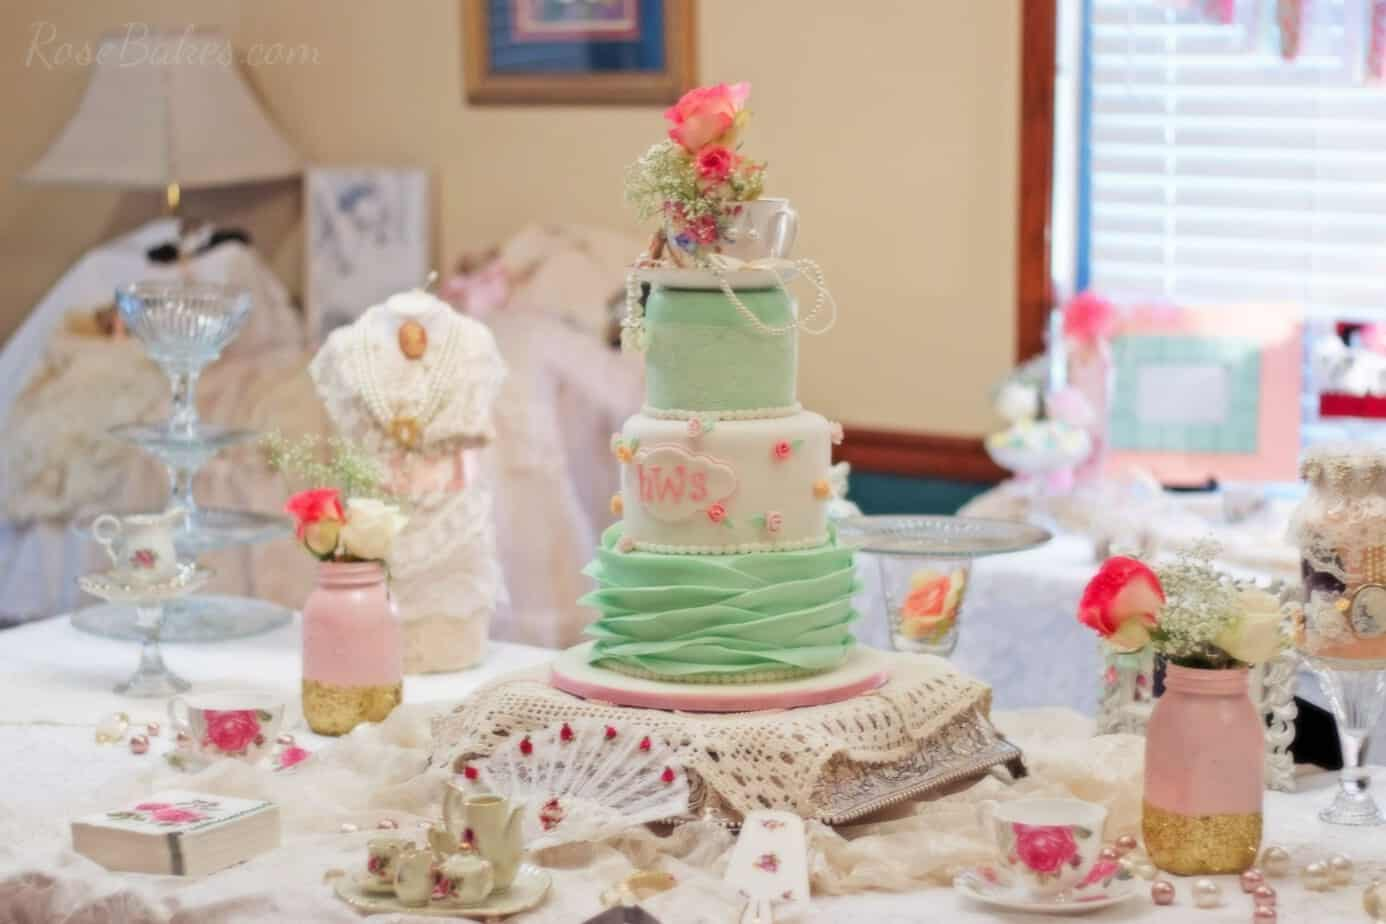 Shabby Chic Baby Shower Cake with Lace and Rosebuds and Ruffles